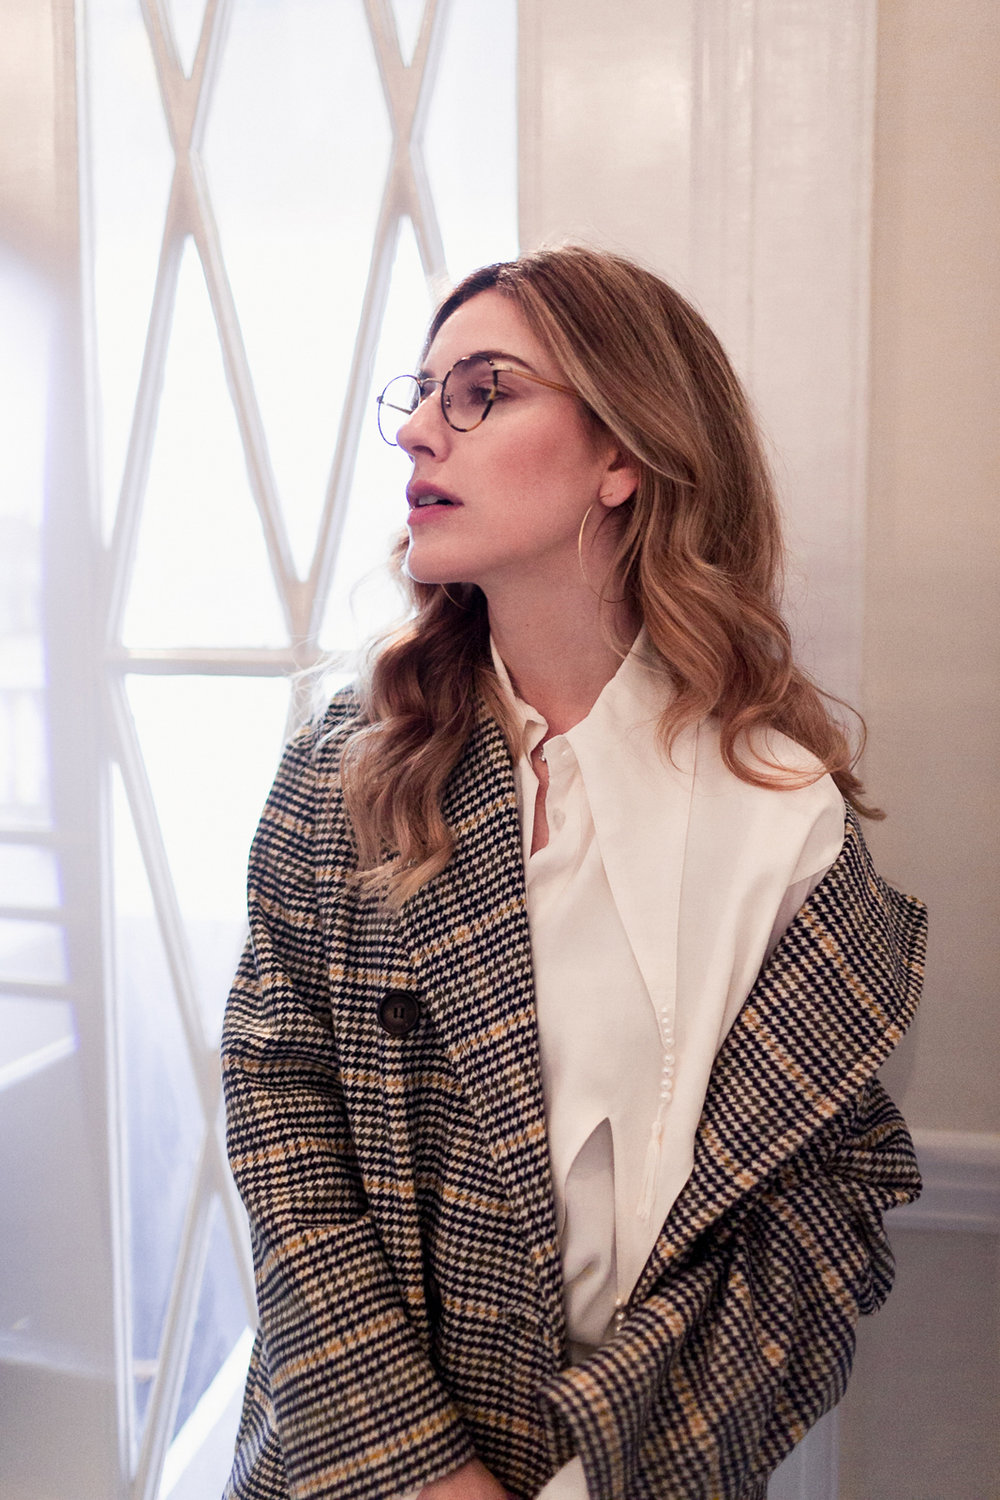 Eldridge Edit_anna_e_cottrell_fashion_blog_blogger_nordstrom_topshop_houndstooth_double_breasted_duster_coat_sale_topshop_garret_leight_glasses_thatch_lola_14k_gold_hoops_vintage_zara_bug_bag_mgb_photo_7.jpg